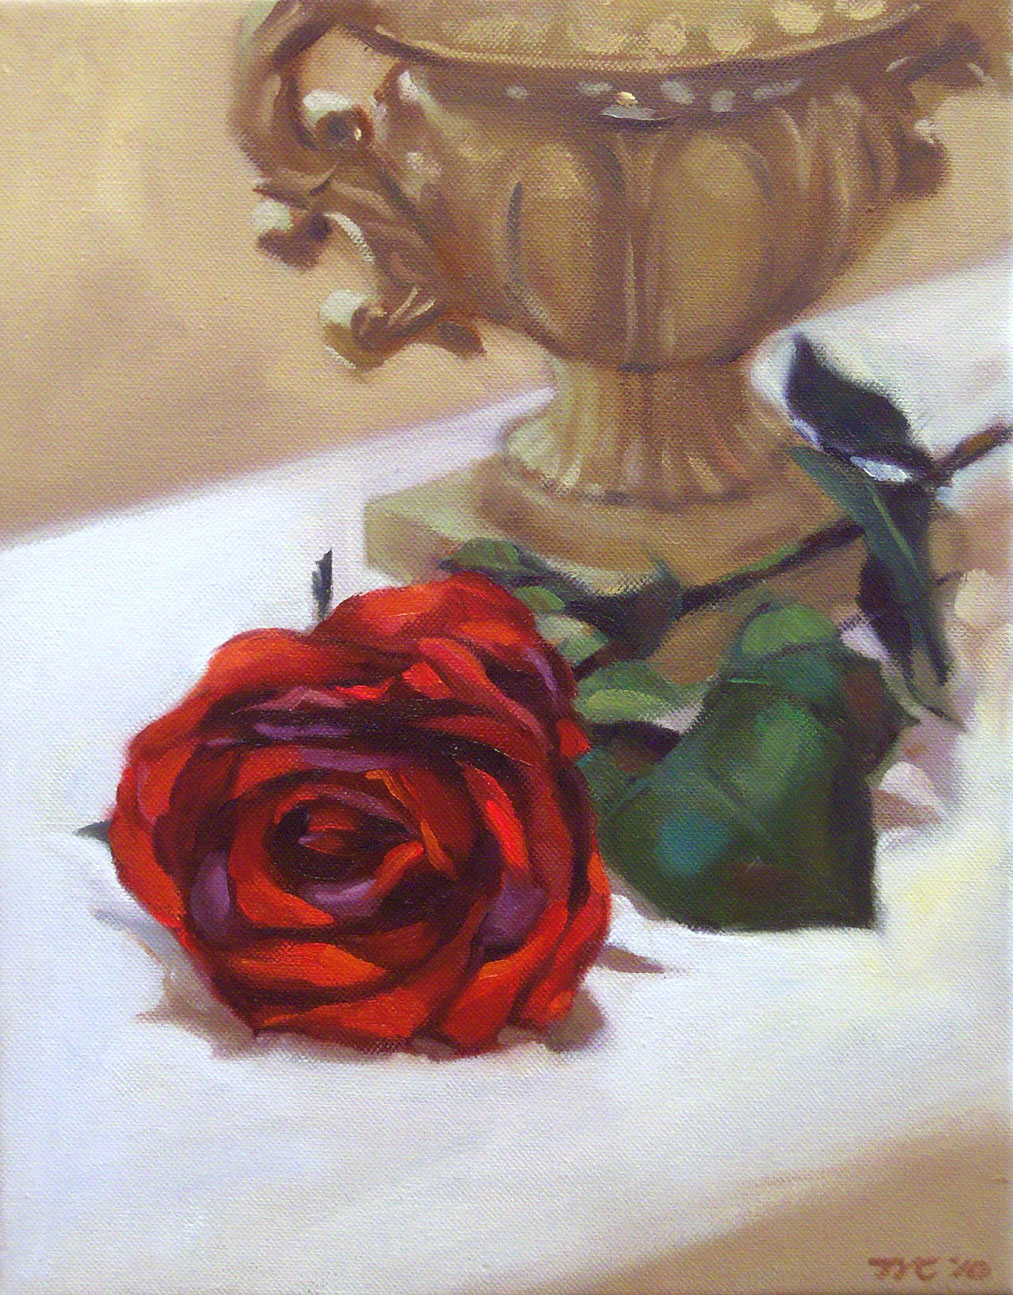 Painting What You See: Red Rose and a Vase